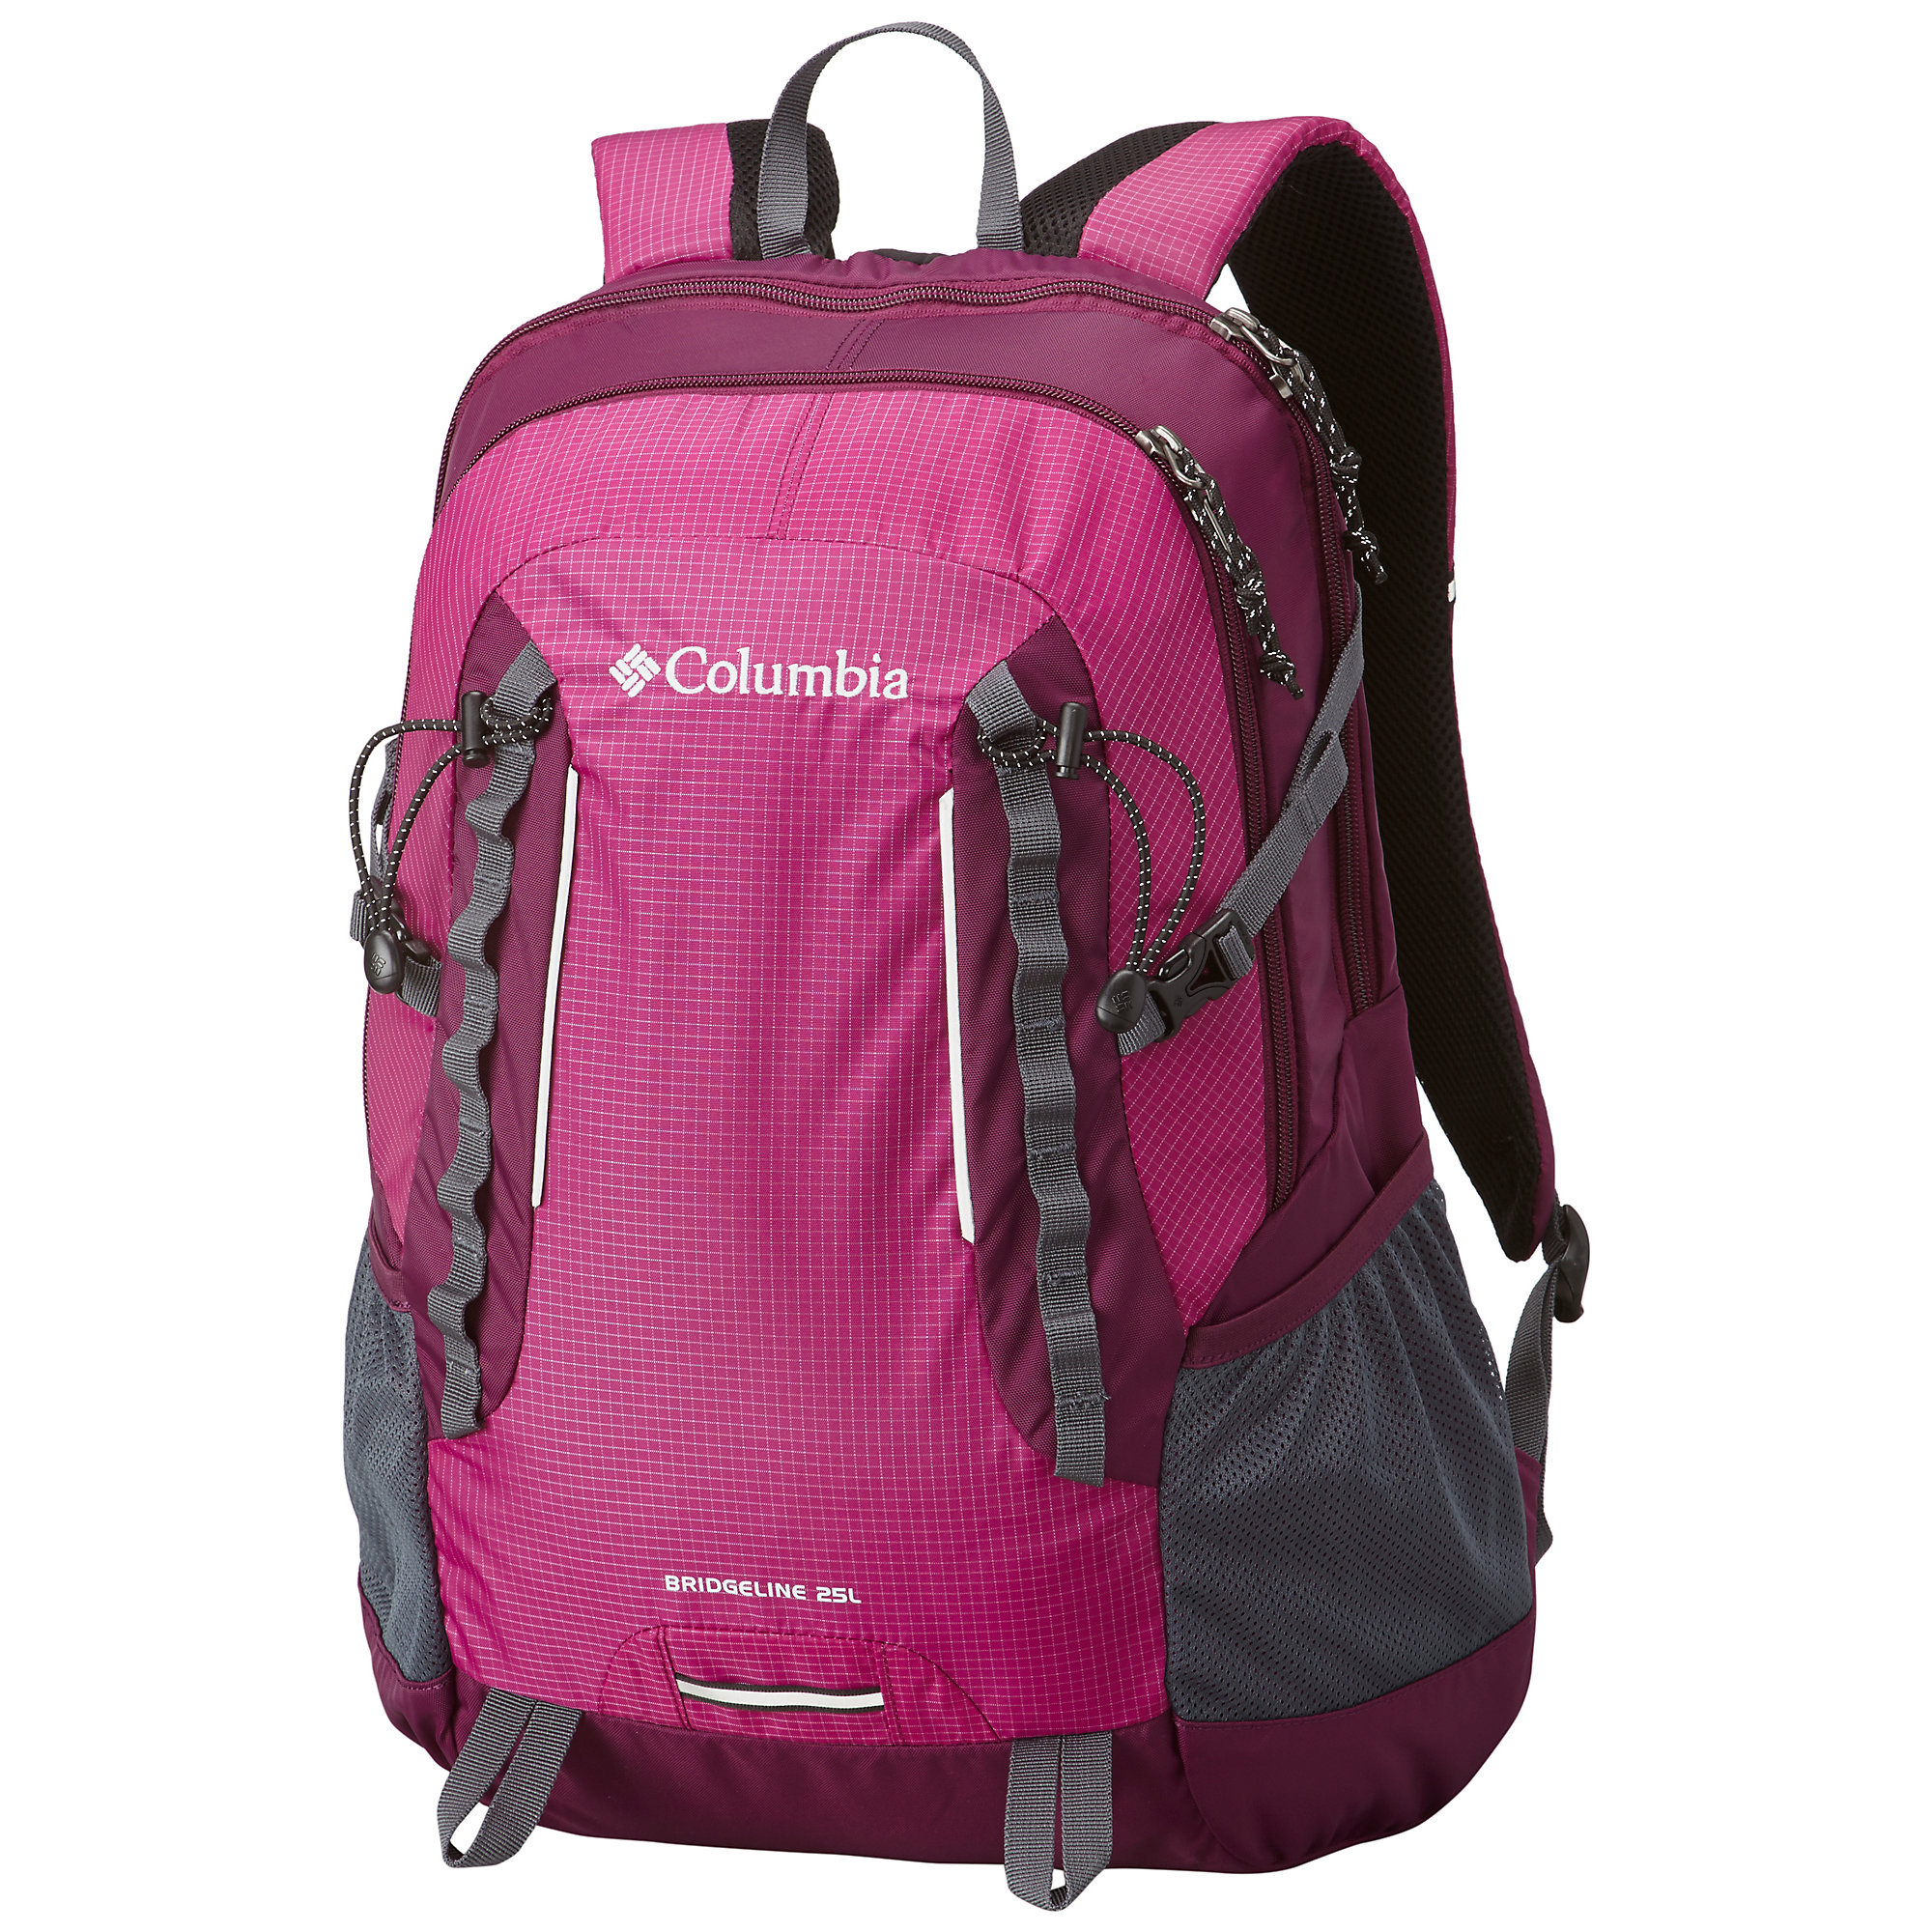 Columbia Bridgeline 25L